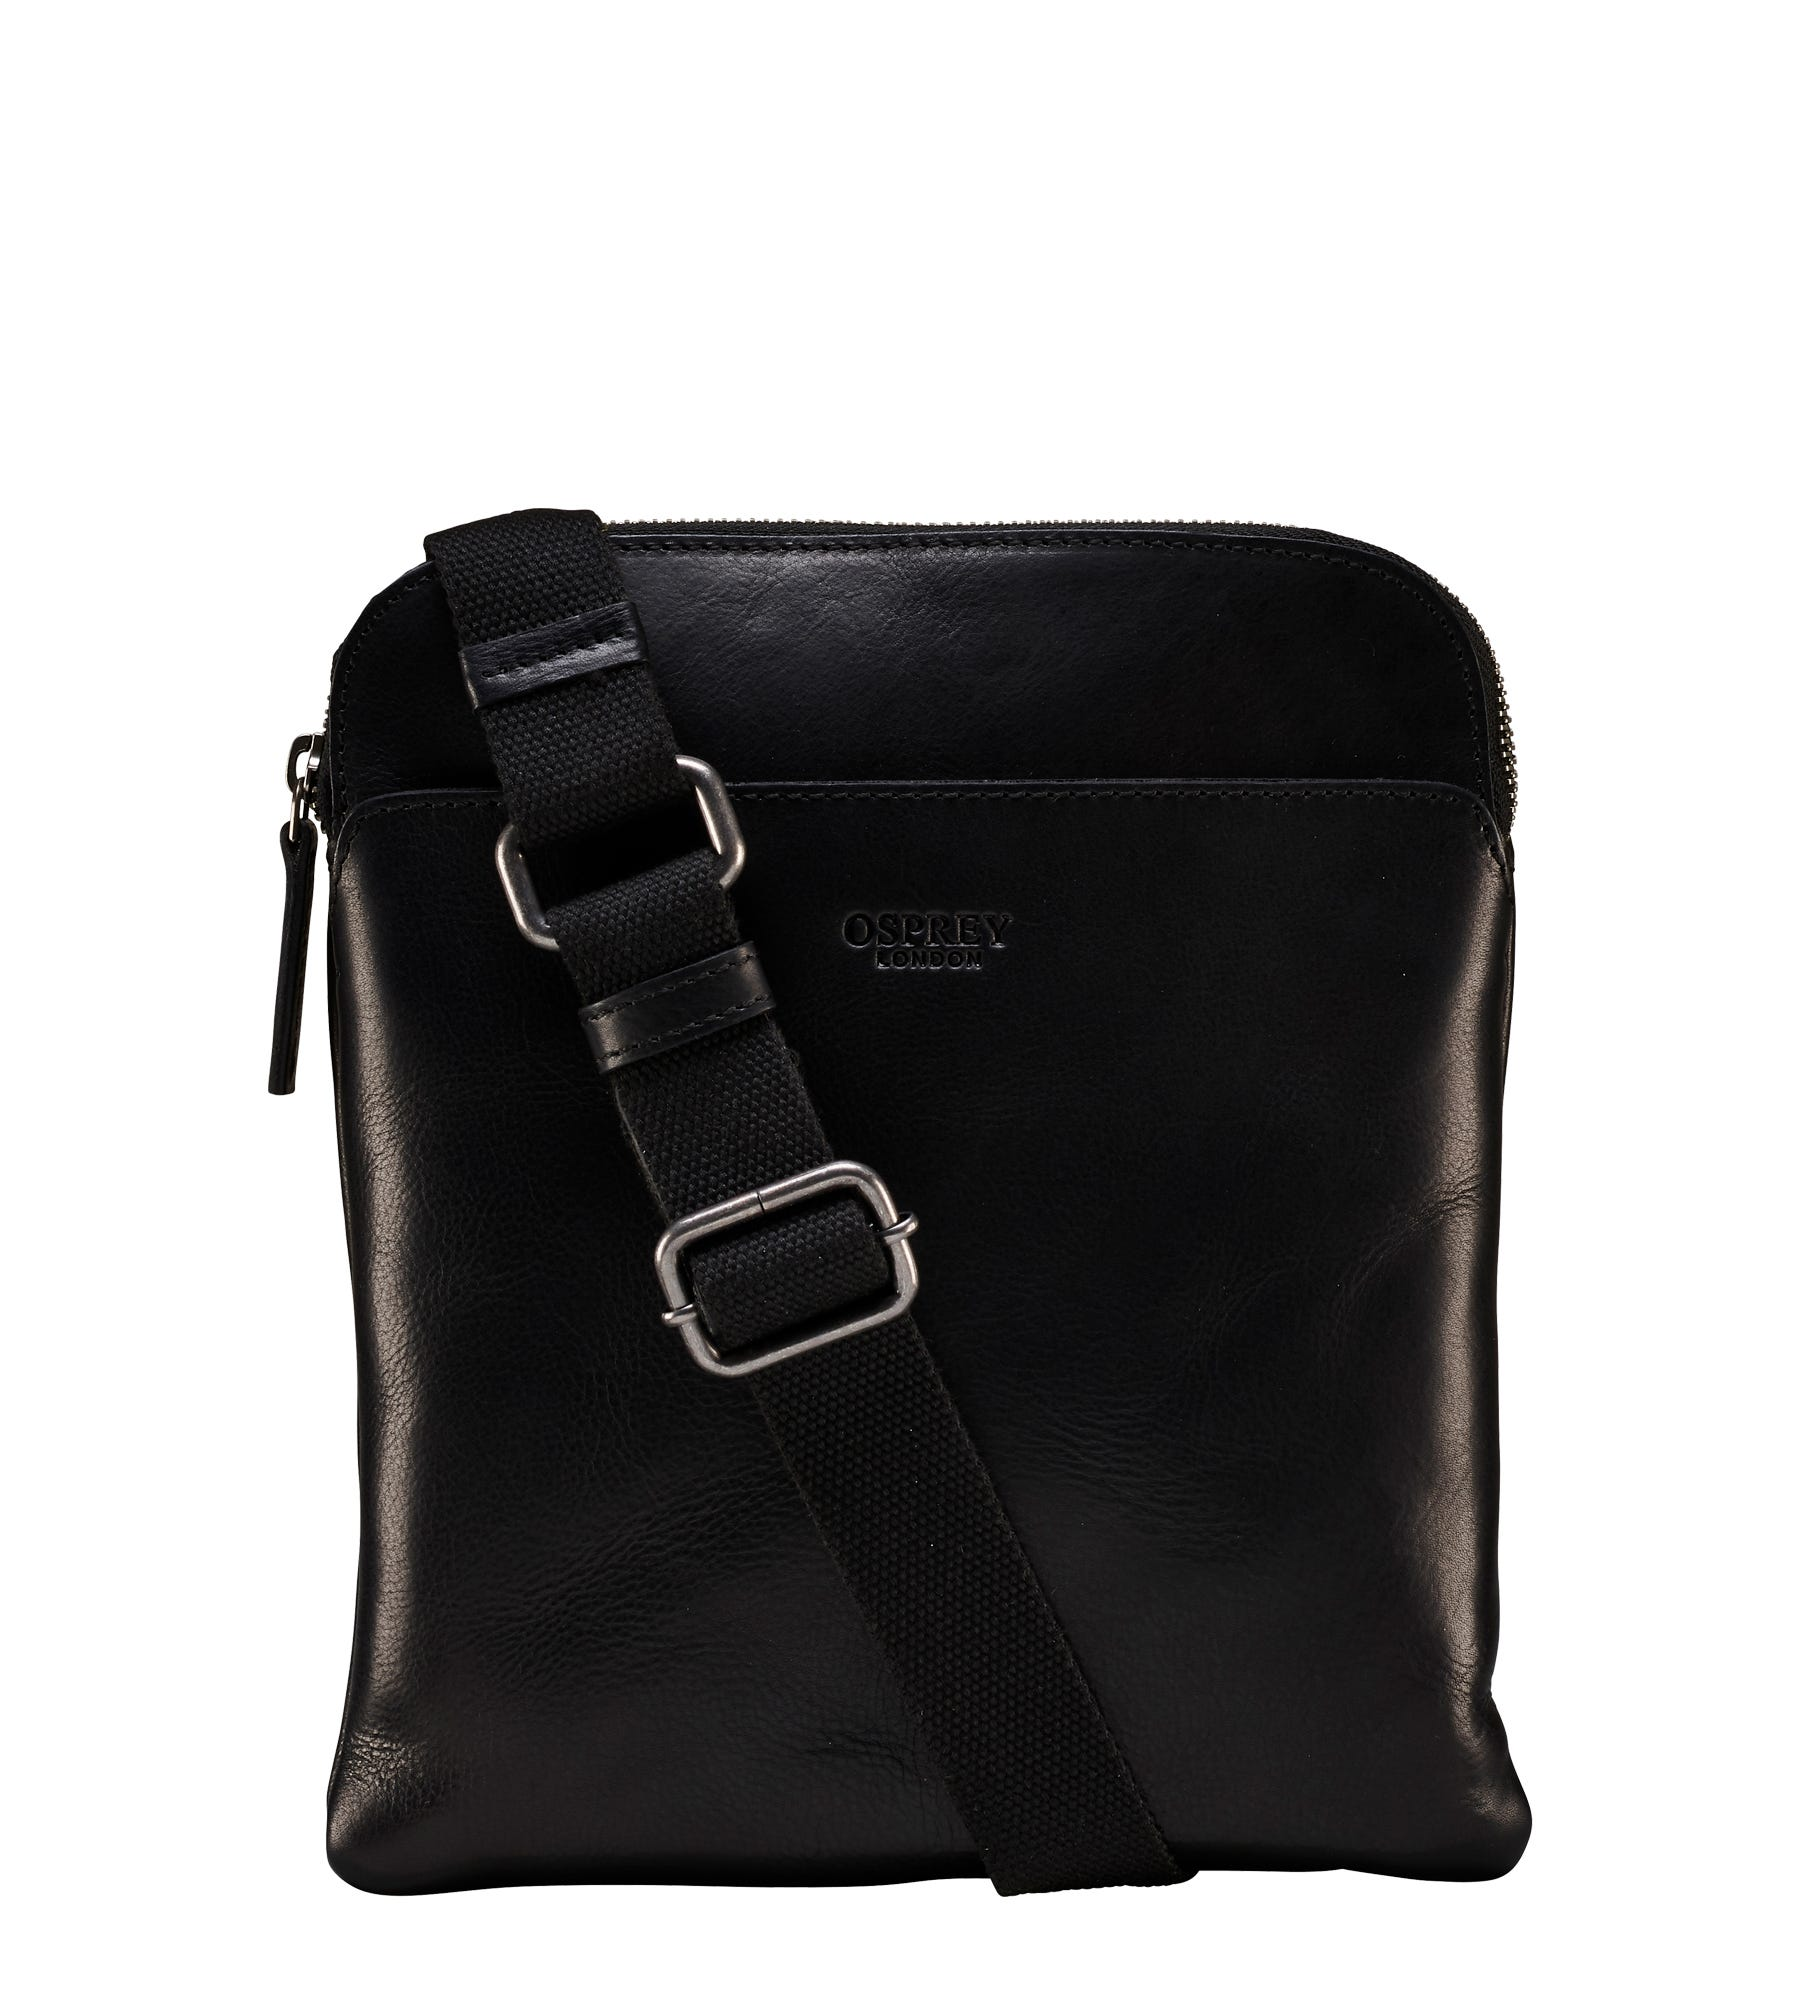 An image of The Small Fieldy Leather Messenger